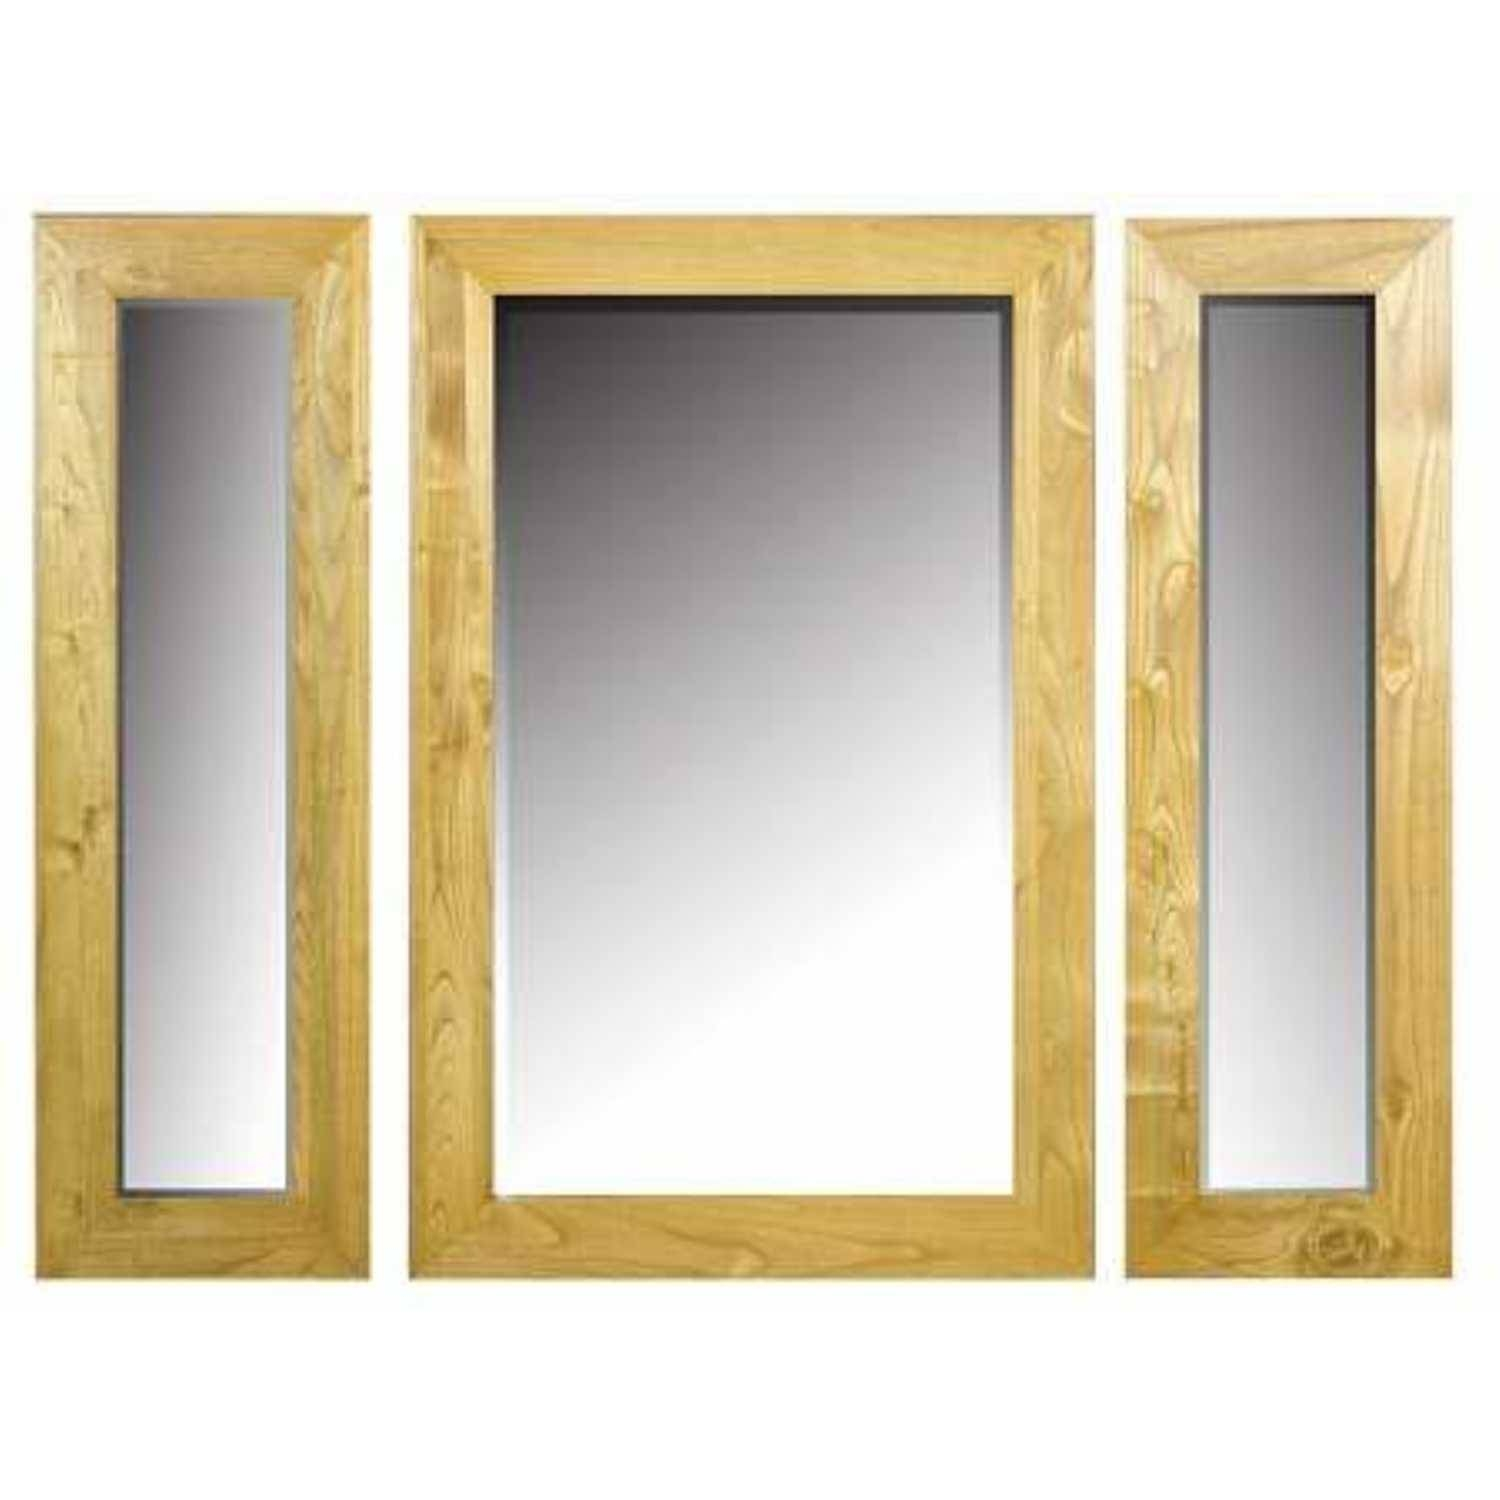 Traditional Milan Triple Wall Mirror Solid Sungkai Hardwood In Triple Wall Mirrors (View 3 of 15)